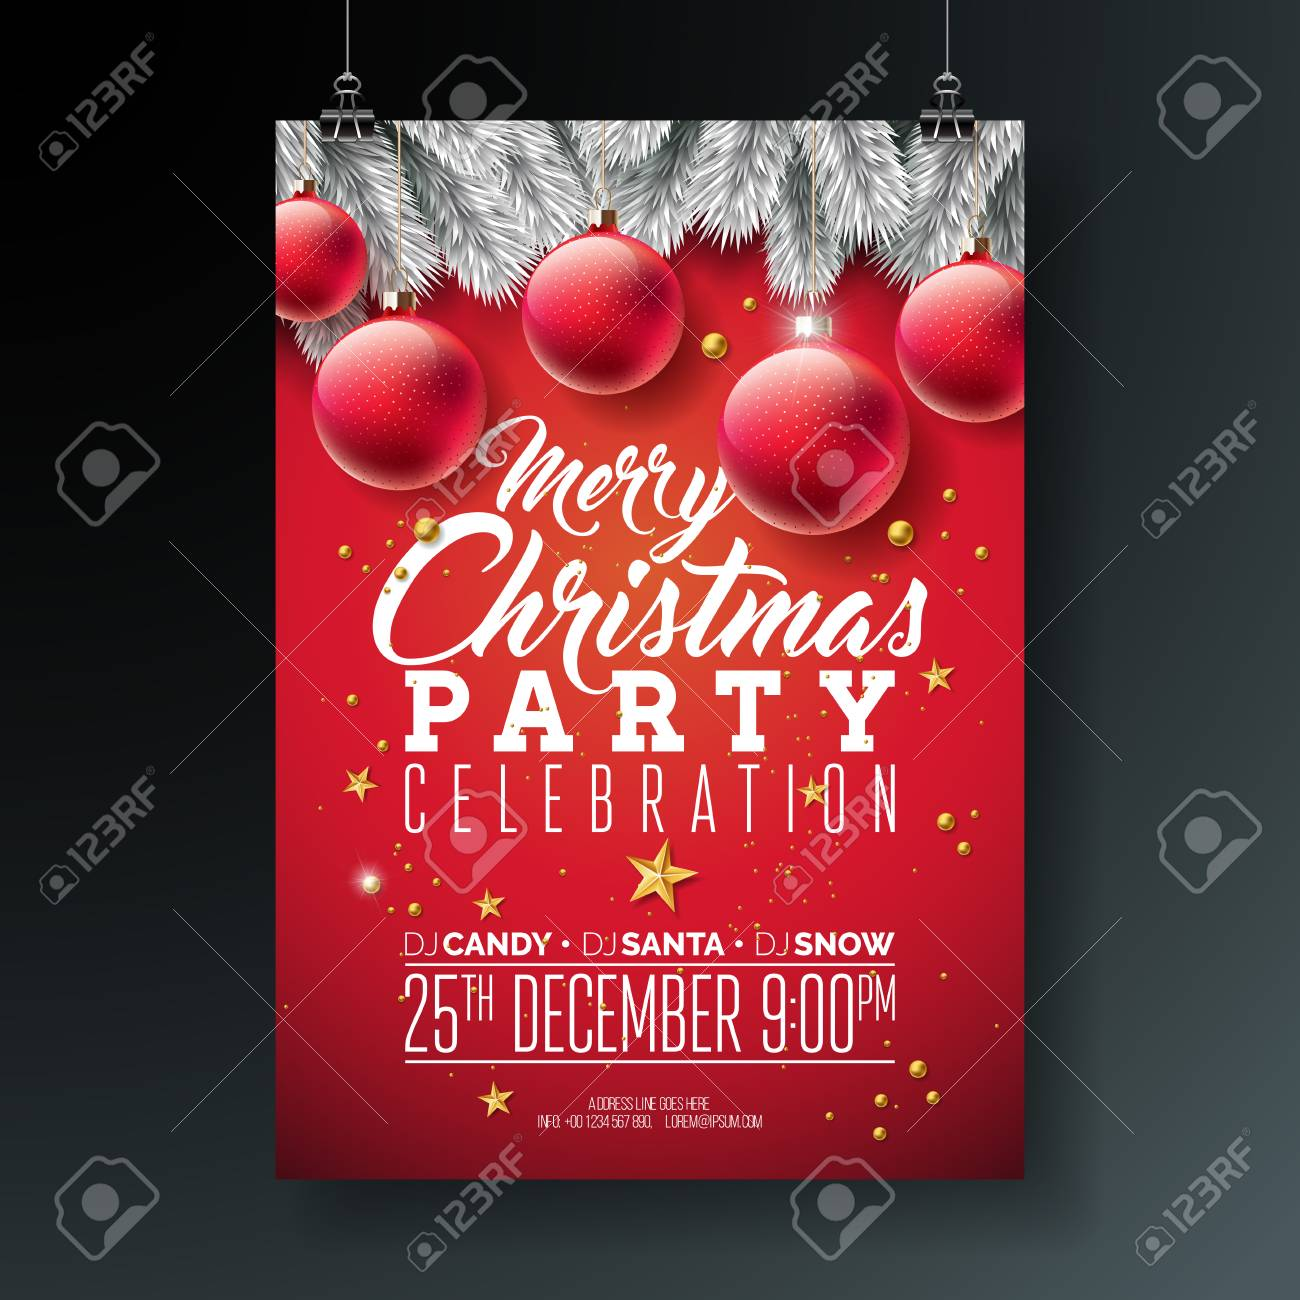 Christmas Party Flyer Template.Vector Merry Christmas Party Flyer Illustration With Typography